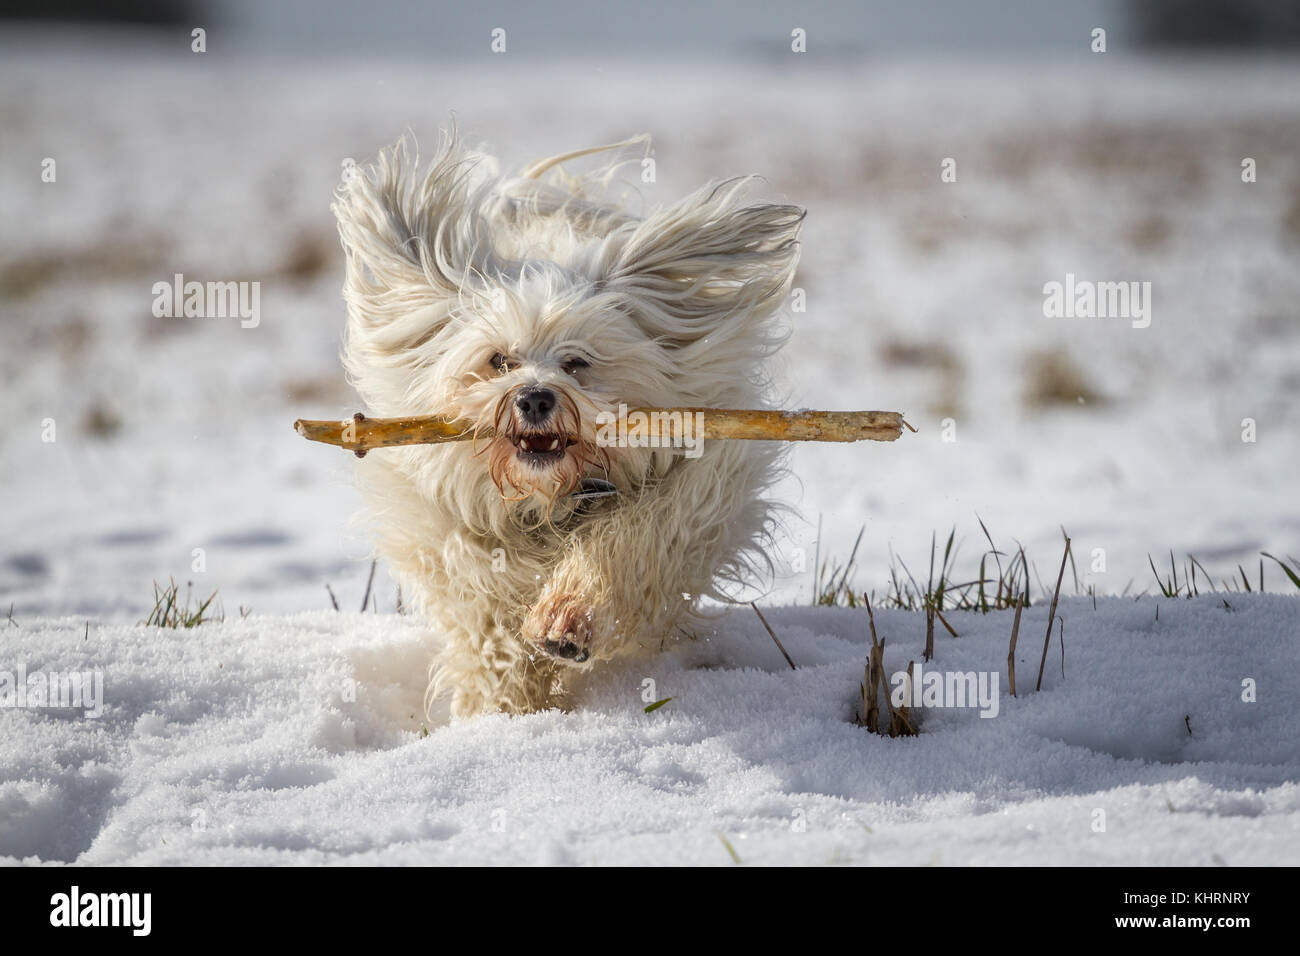 A white small dog retrieves a stick in the snow. - Stock Image